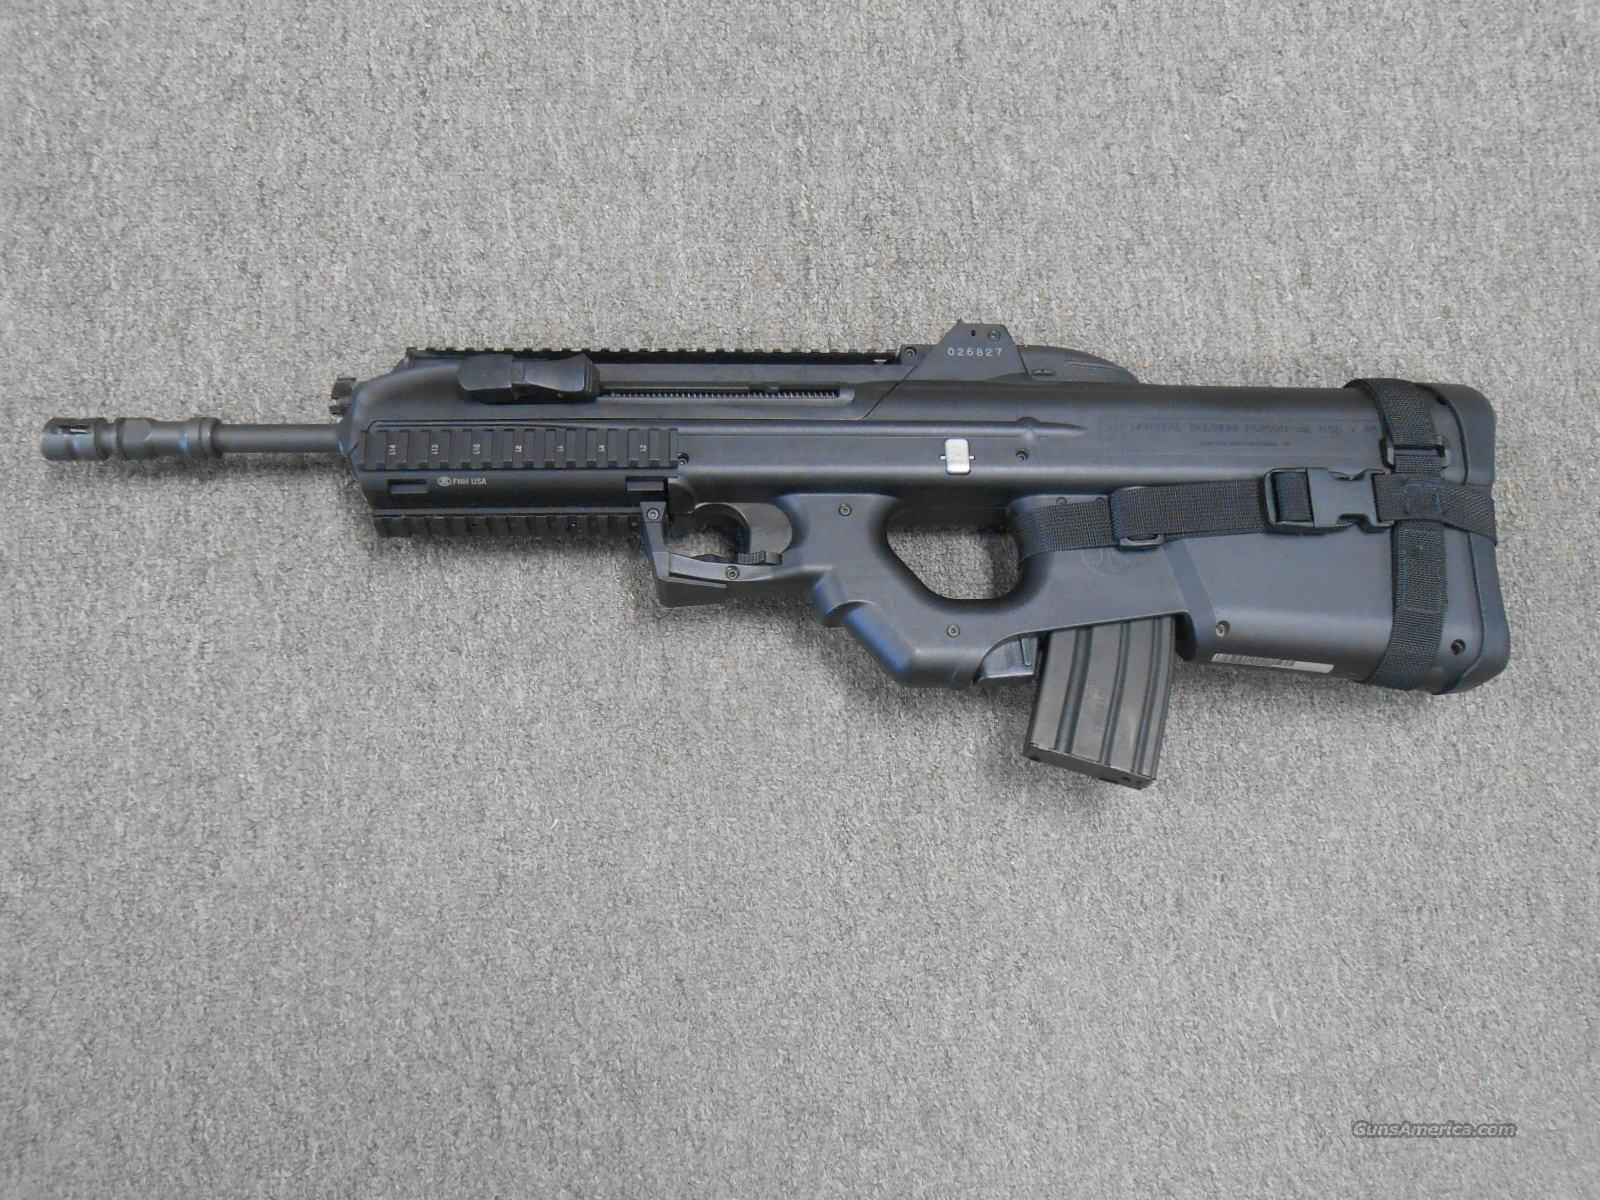 FNH FS2000 Used 5.56 Blk SP Sling & Bag  Guns > Rifles > FNH - Fabrique Nationale (FN) Rifles > Semi-auto > Other